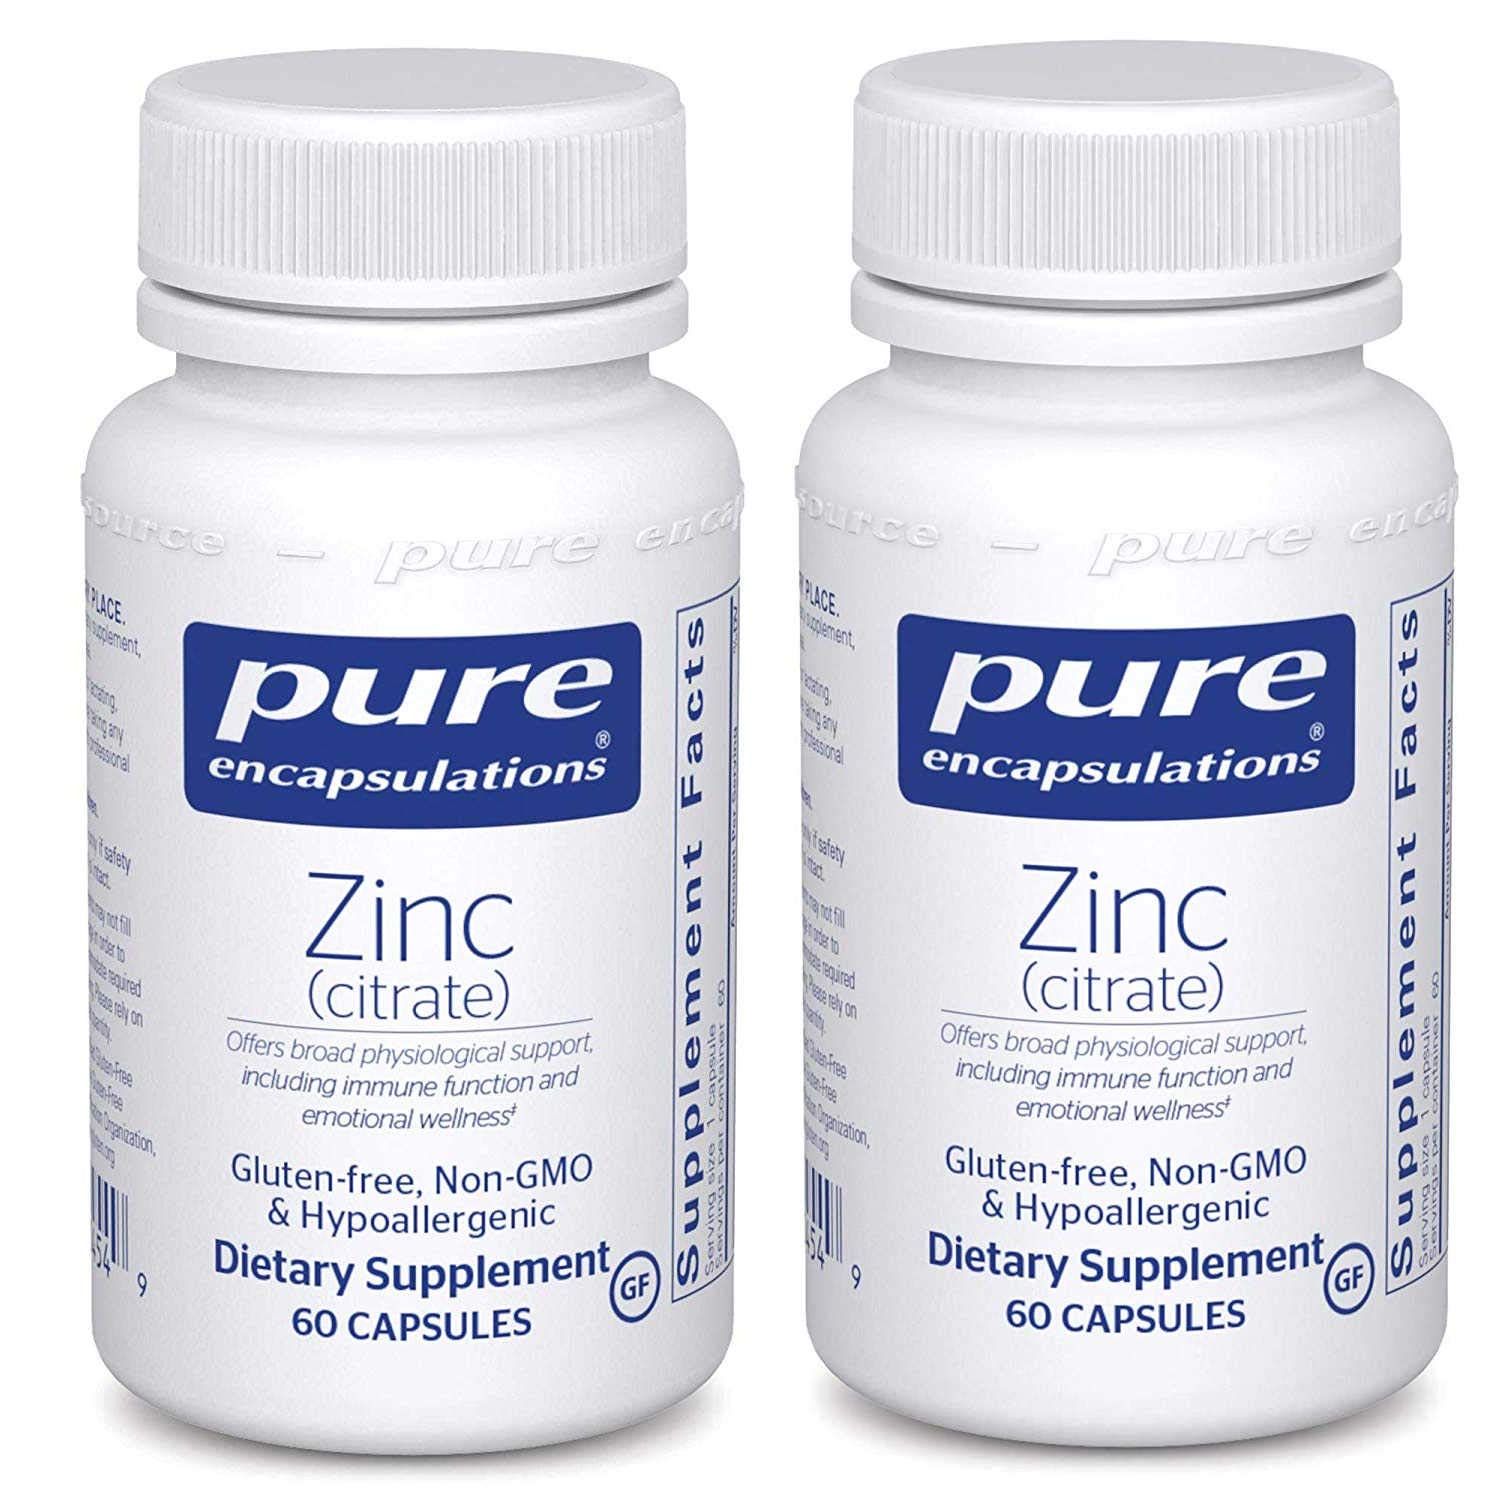 Pure Encapsulations Zinc Citrate Hypo-Allergenic Dietary Supplement - 60 Capsules (Pack of 2)